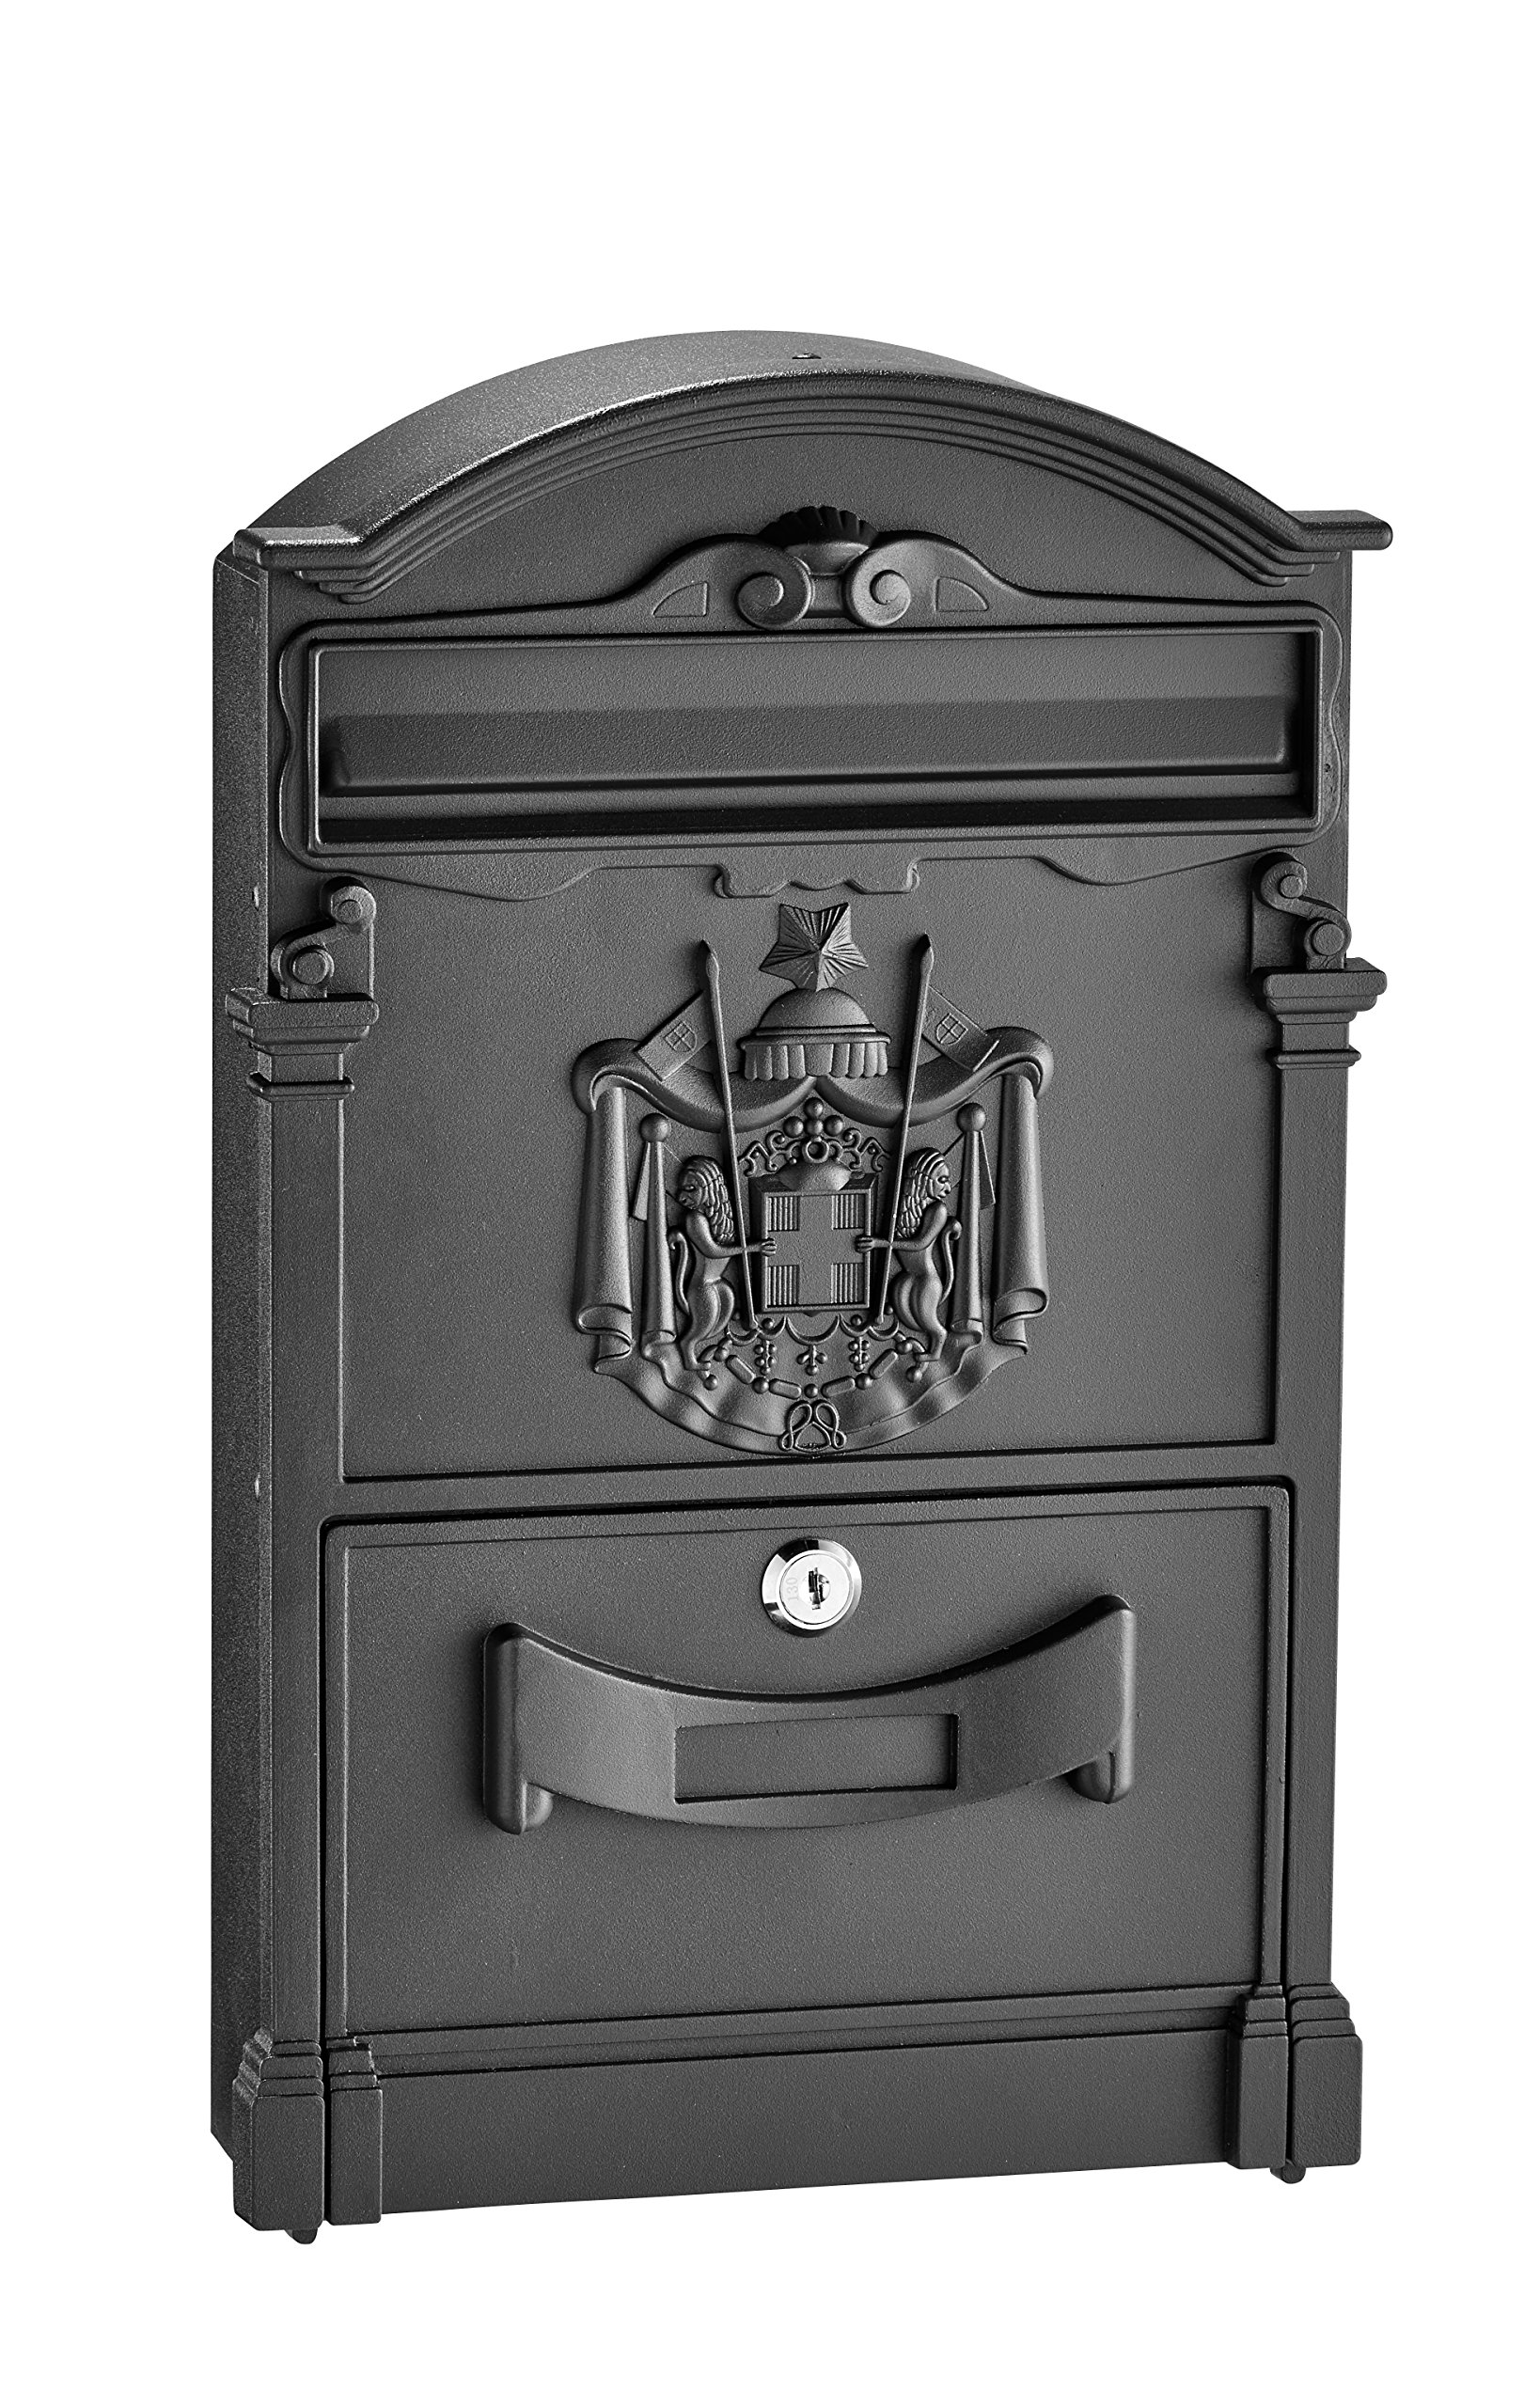 AdirHome Black Steel Old Europe Mailbox